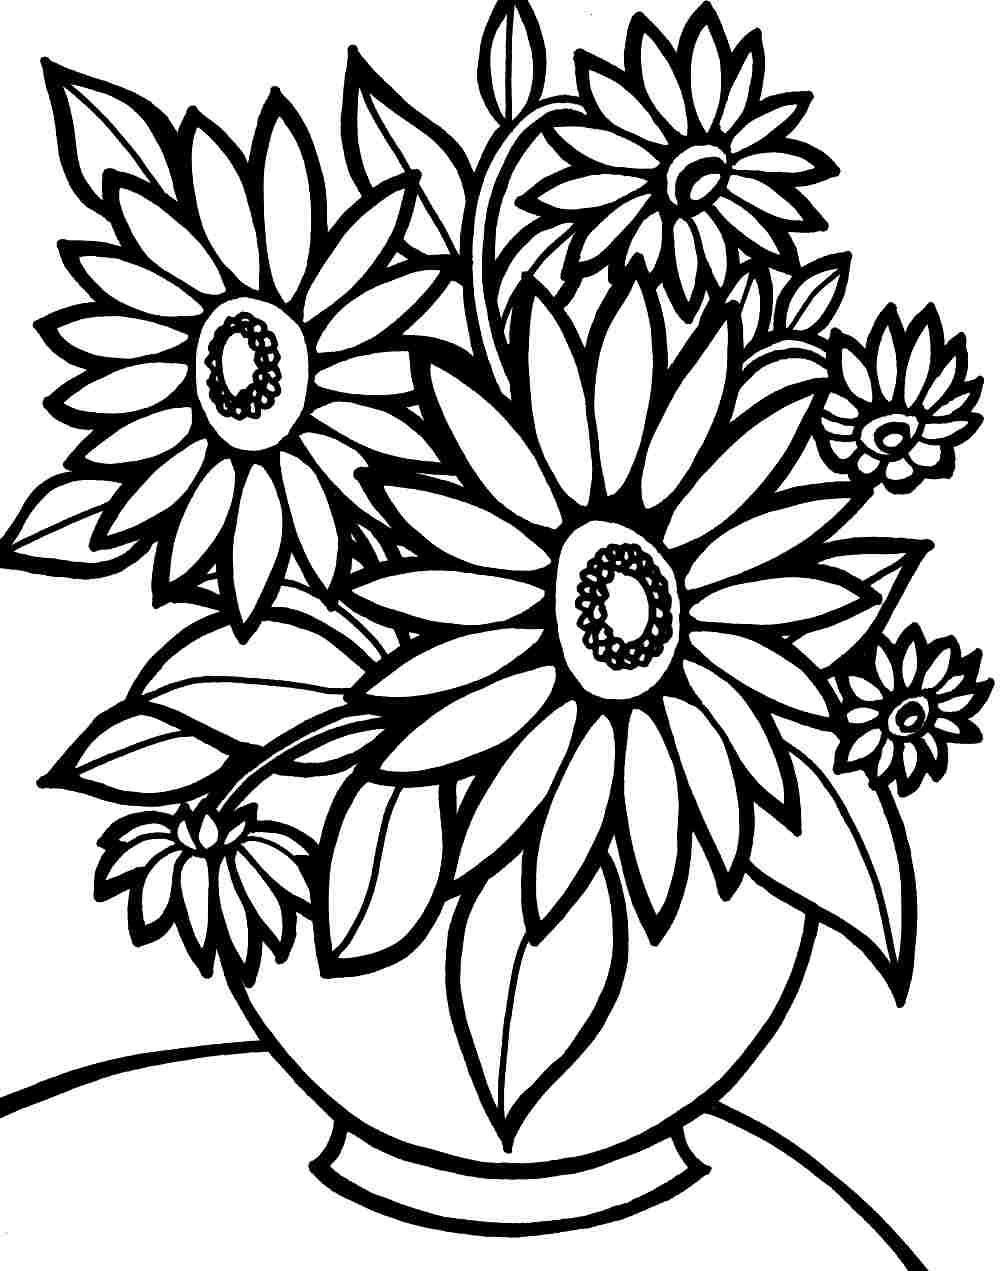 Colouring Pages Bouquet Flowers Printable Free For Kids & Girls